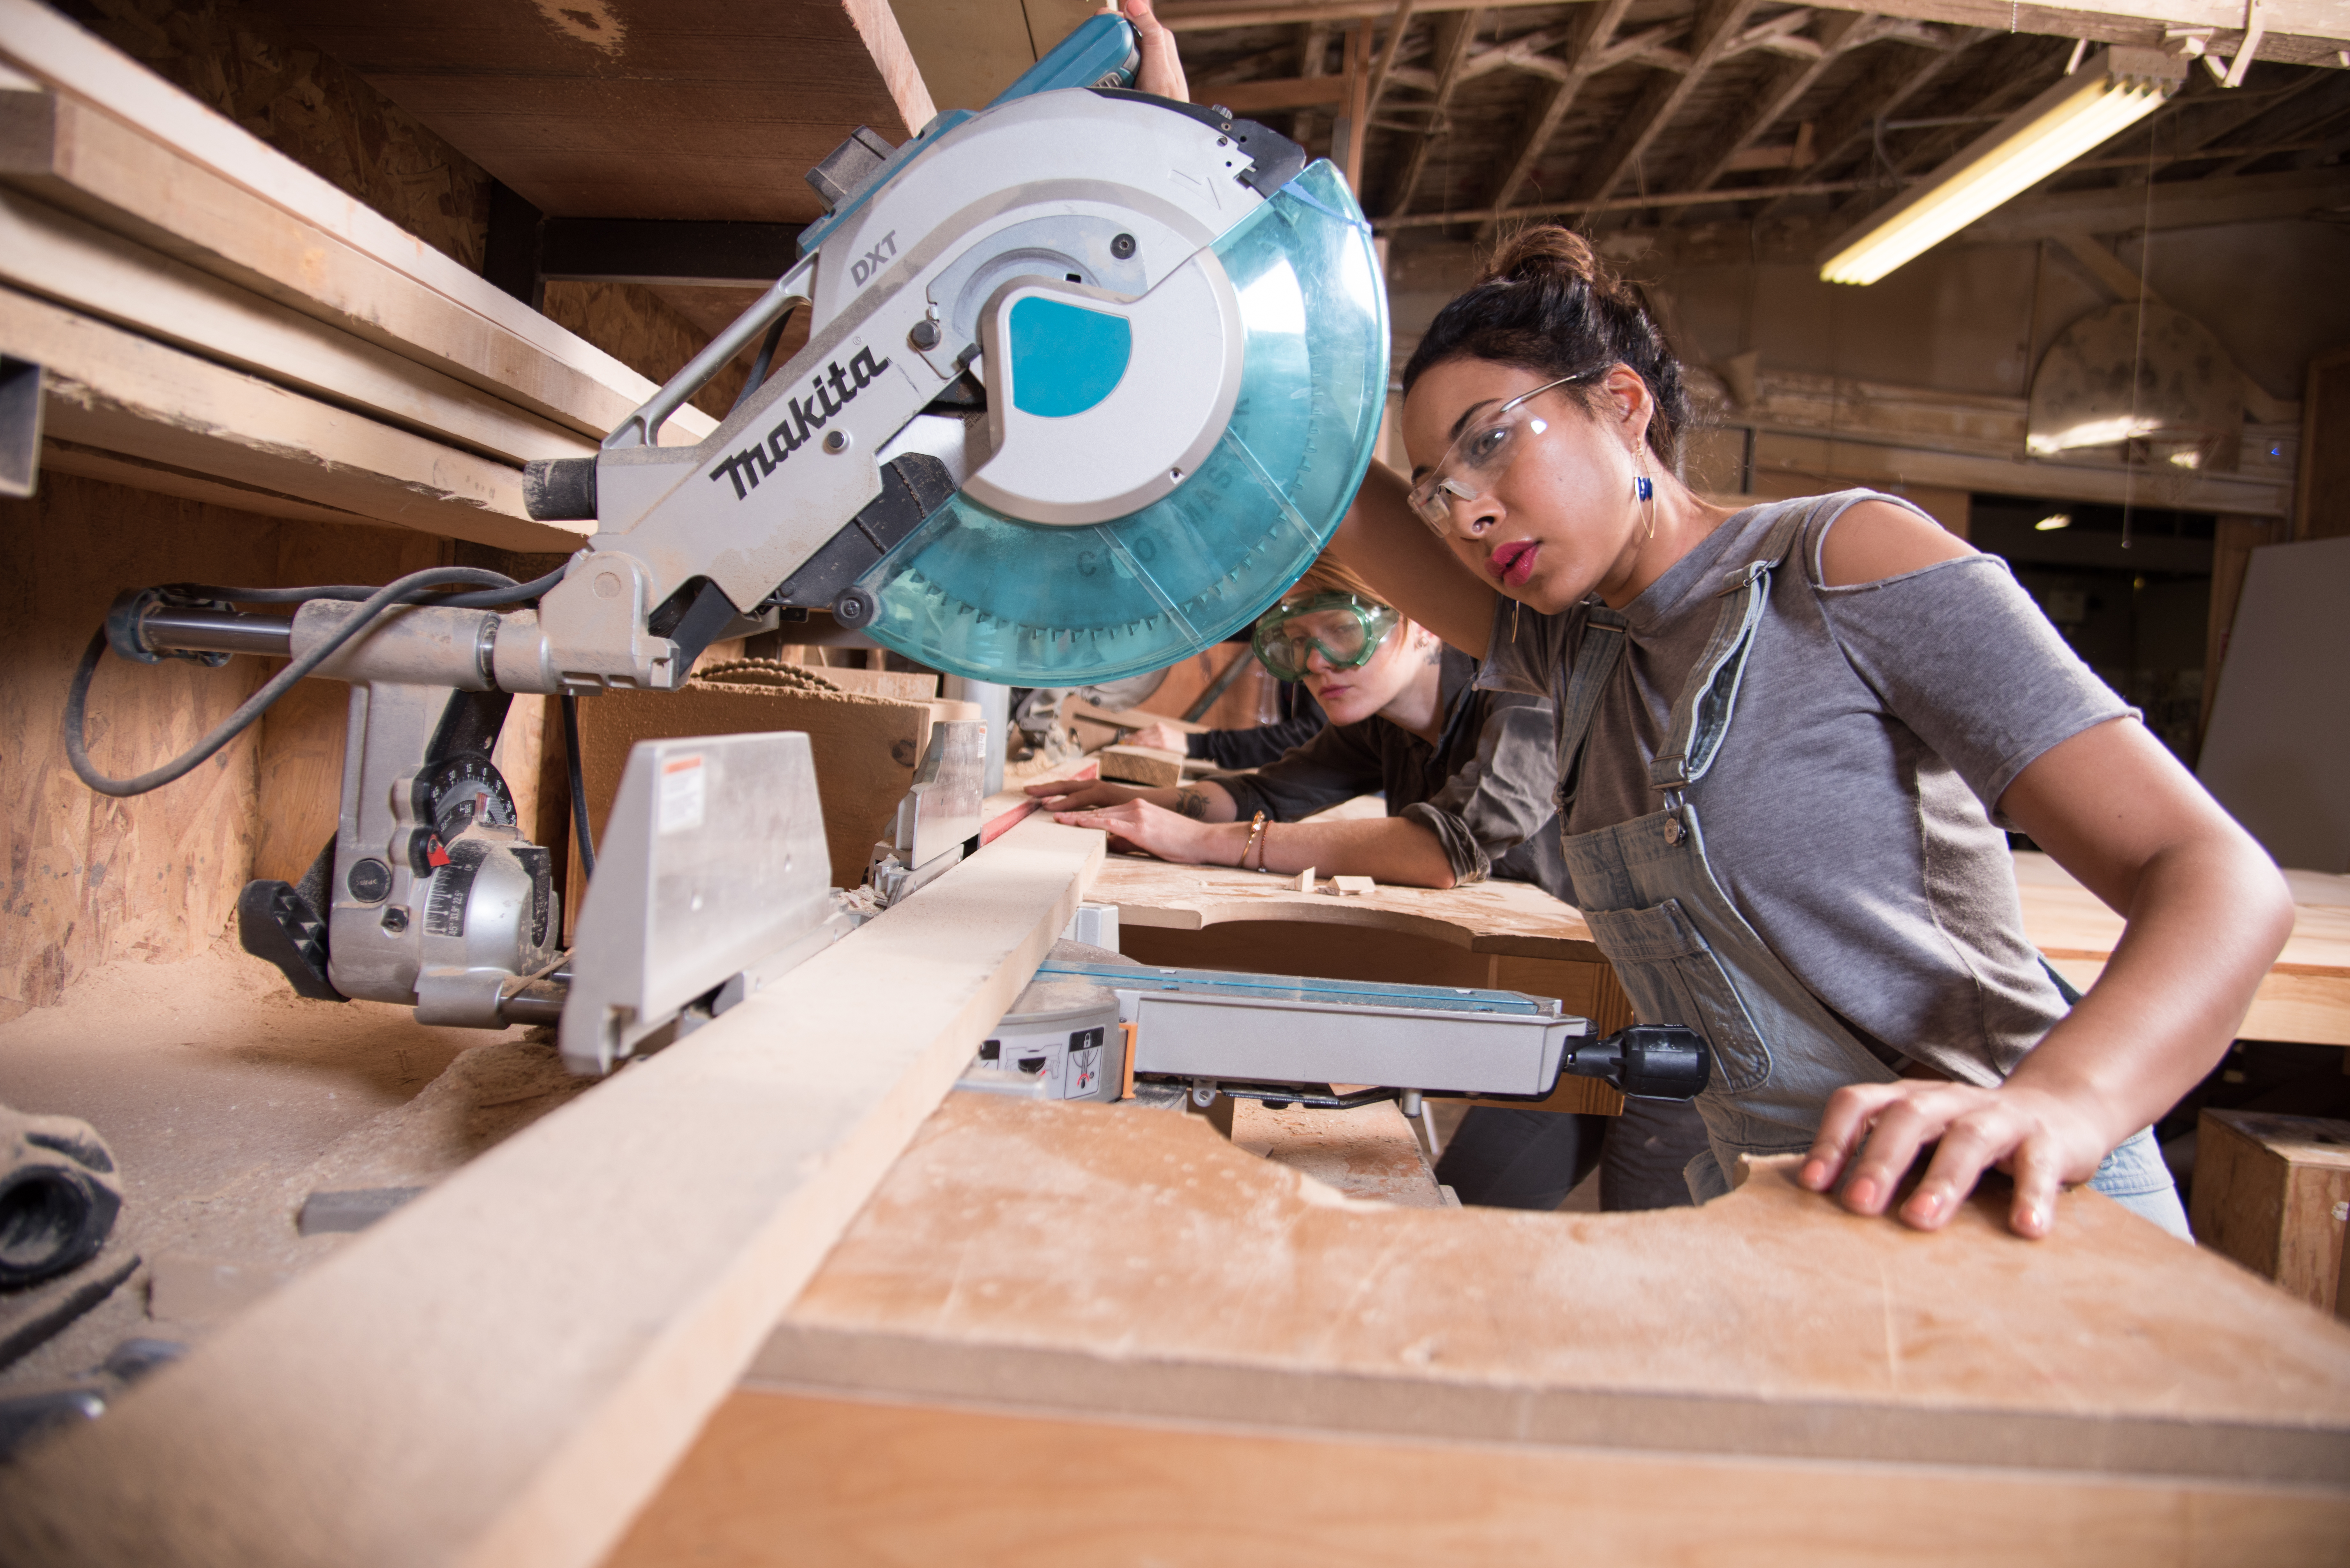 Womanufacture Sawing